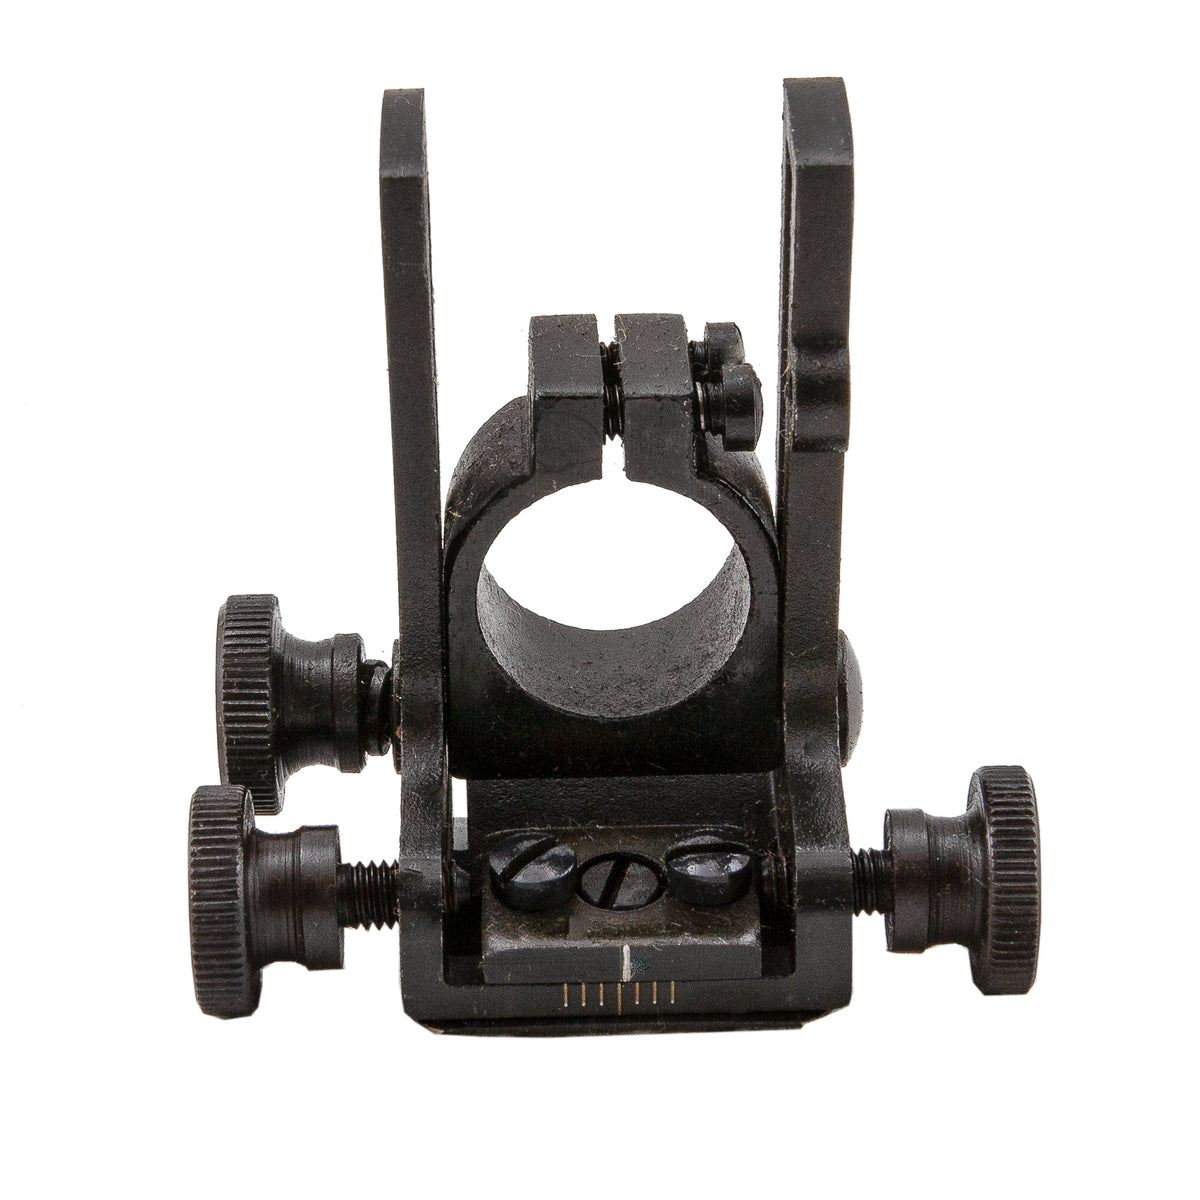 M634MT Rabbit Ear Rear Mount with Vernier Scale